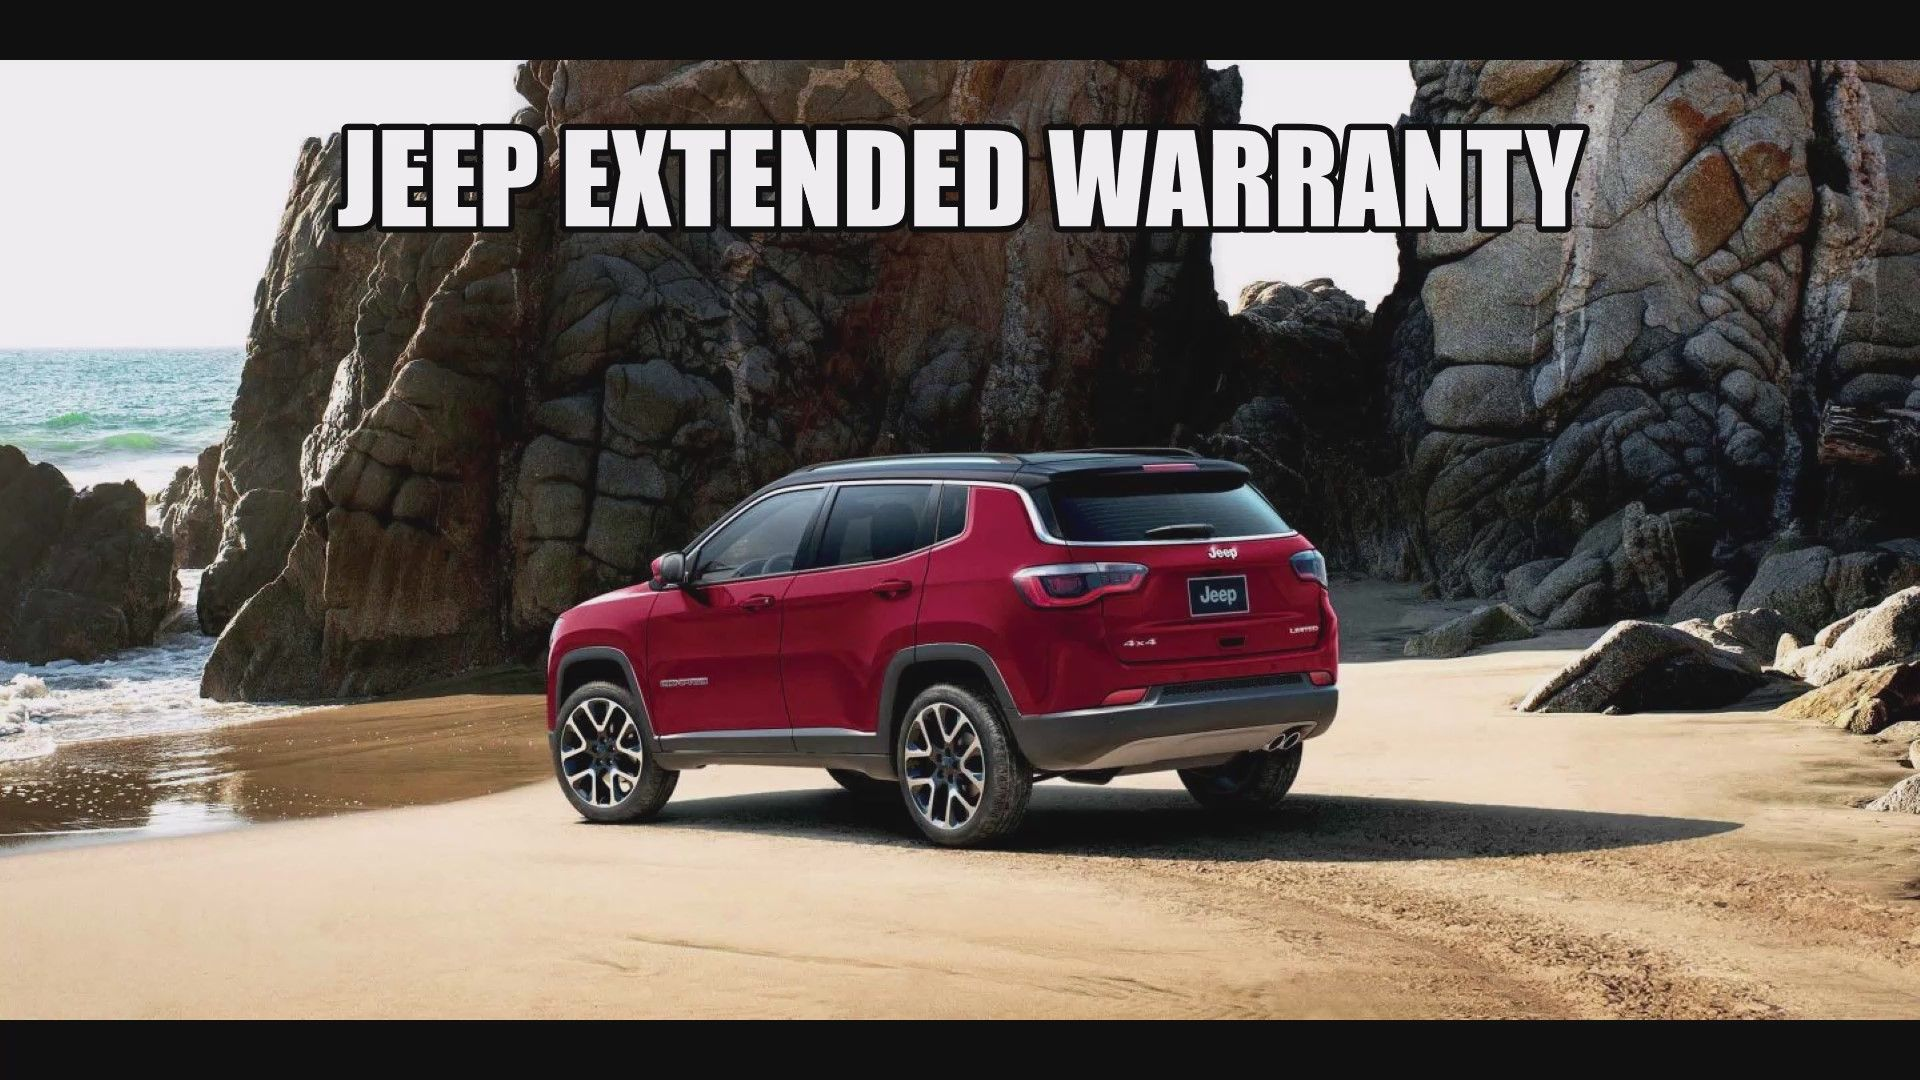 Jeep Compass Extended Warranty Jeep Compass Chrysler Jeep